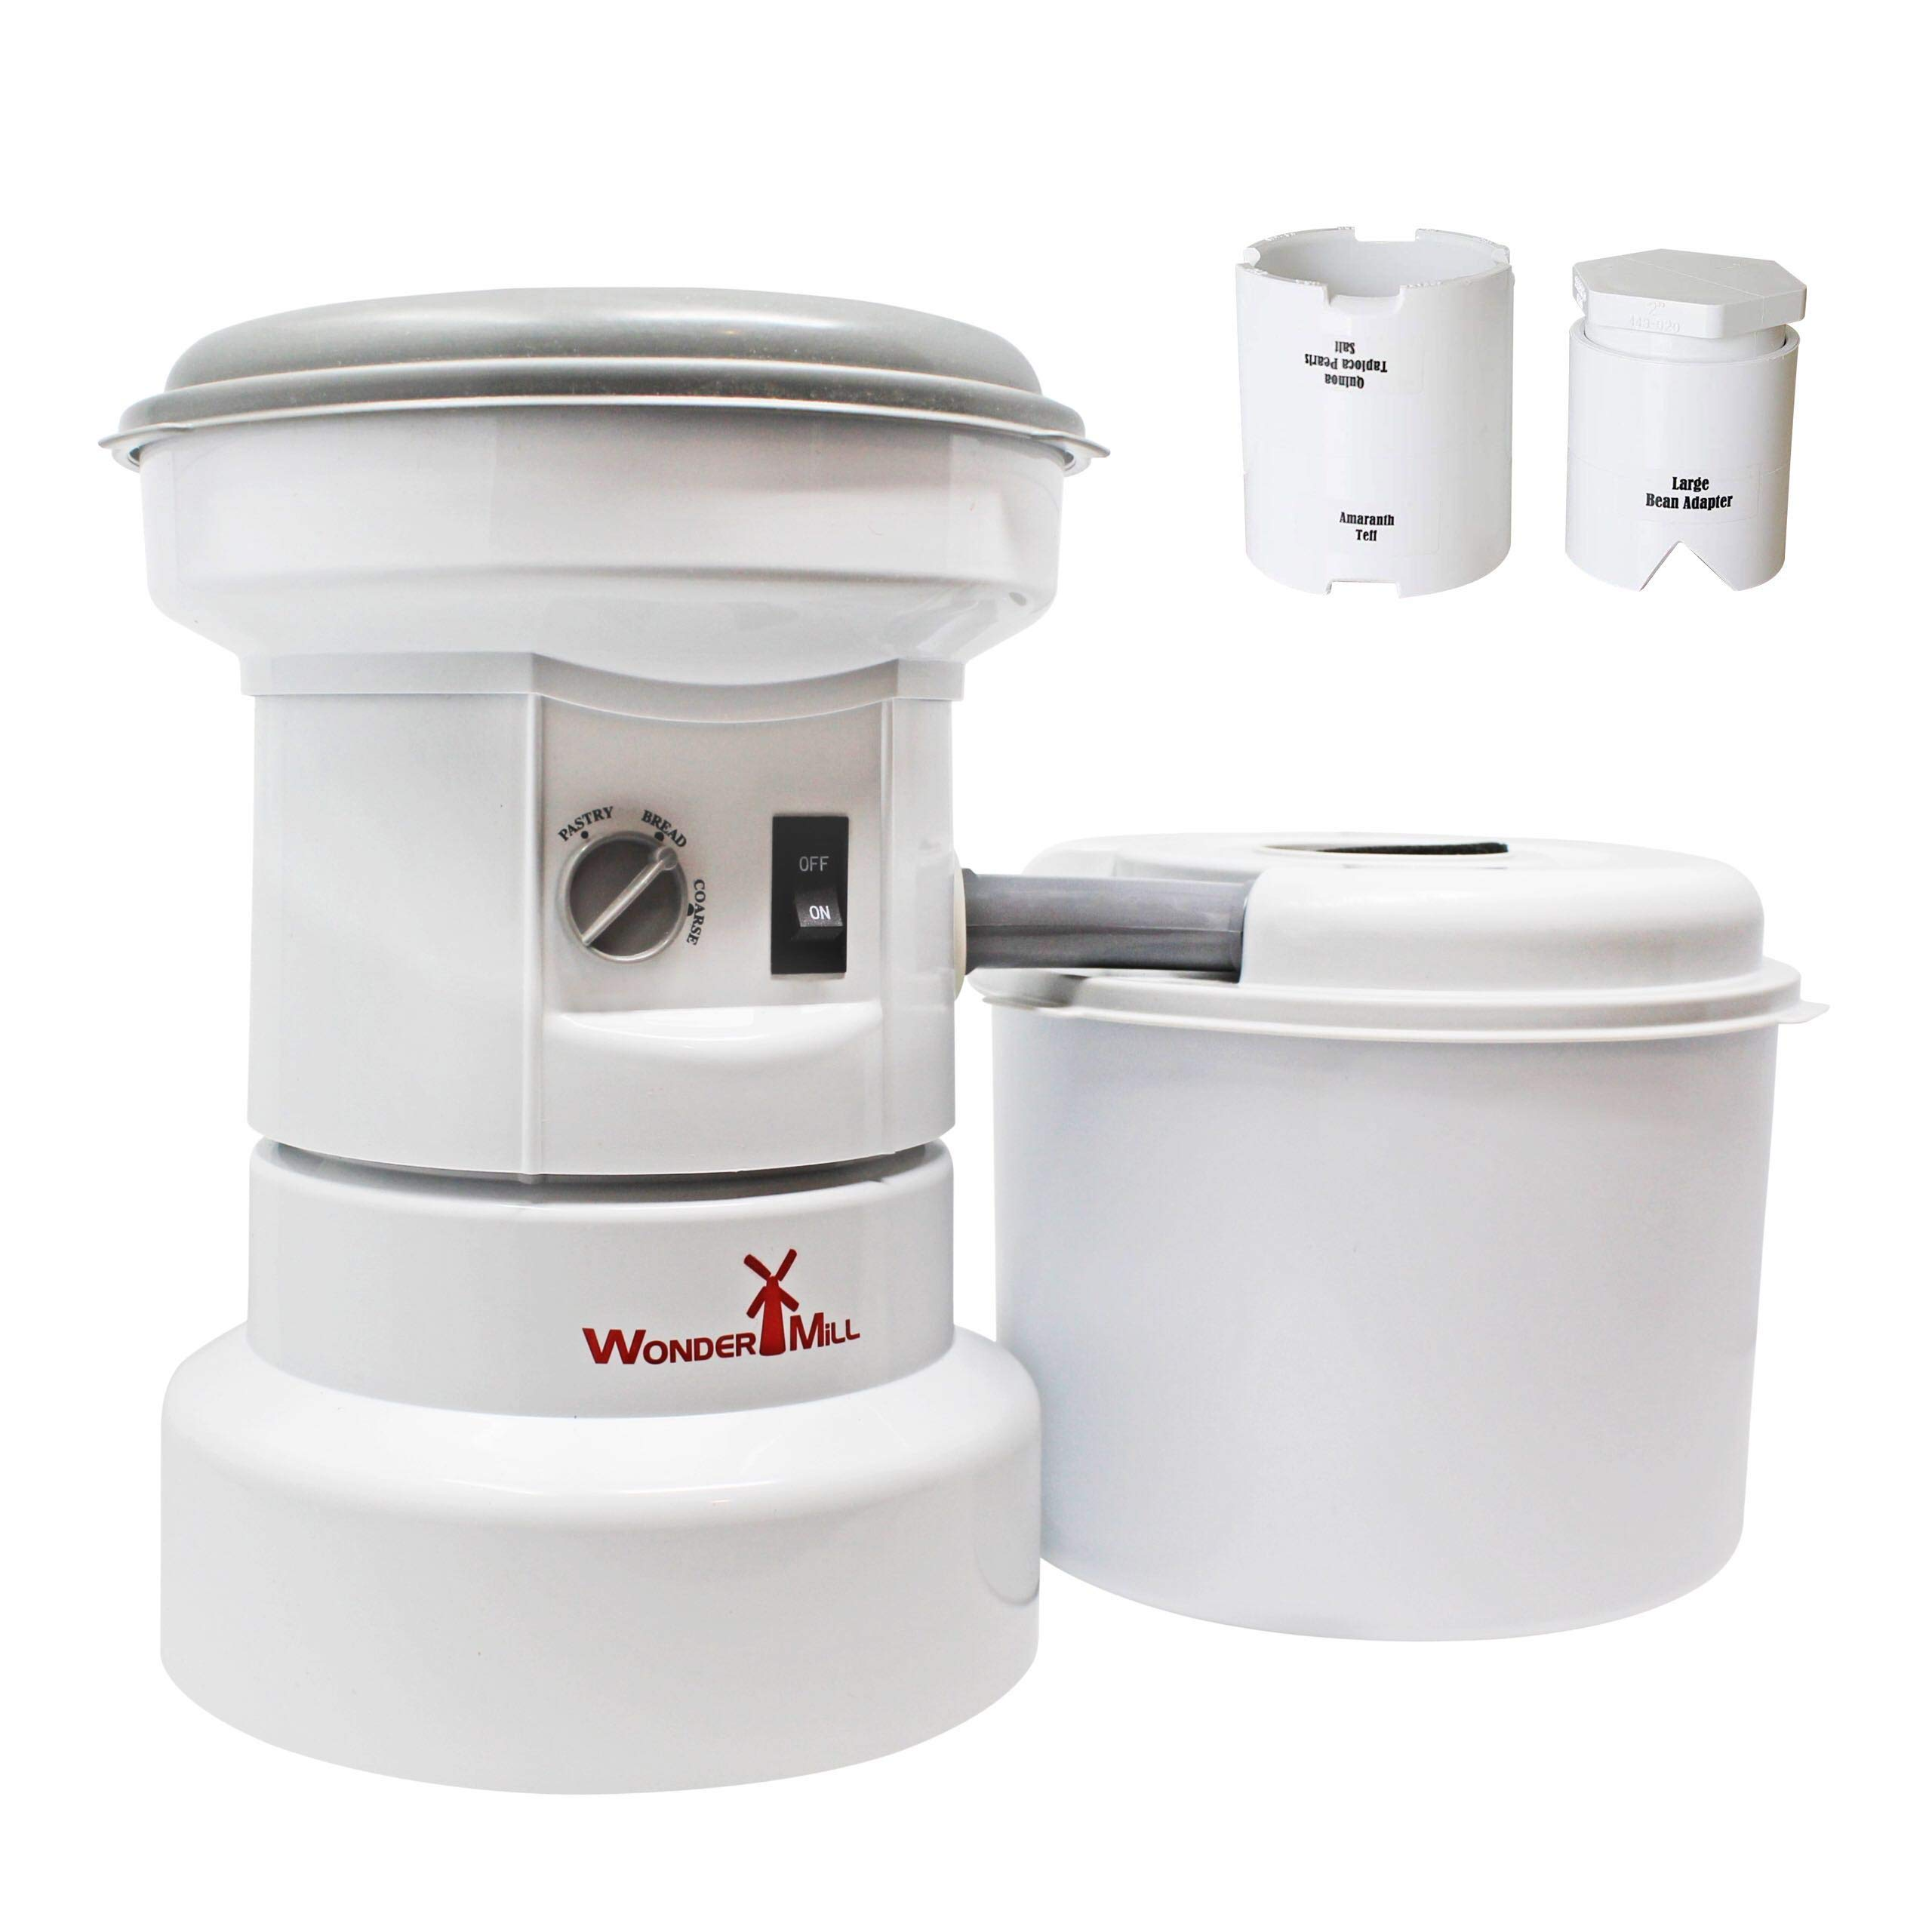 Grain Grinder with Flour Canister, Small Grains Attachment and Large Beans Adapter Combo - Flour Milling Machine for Home and Professional Use - Self-cleaning Electric Grain Mill Grinder by WonderMill by WONDERMILL